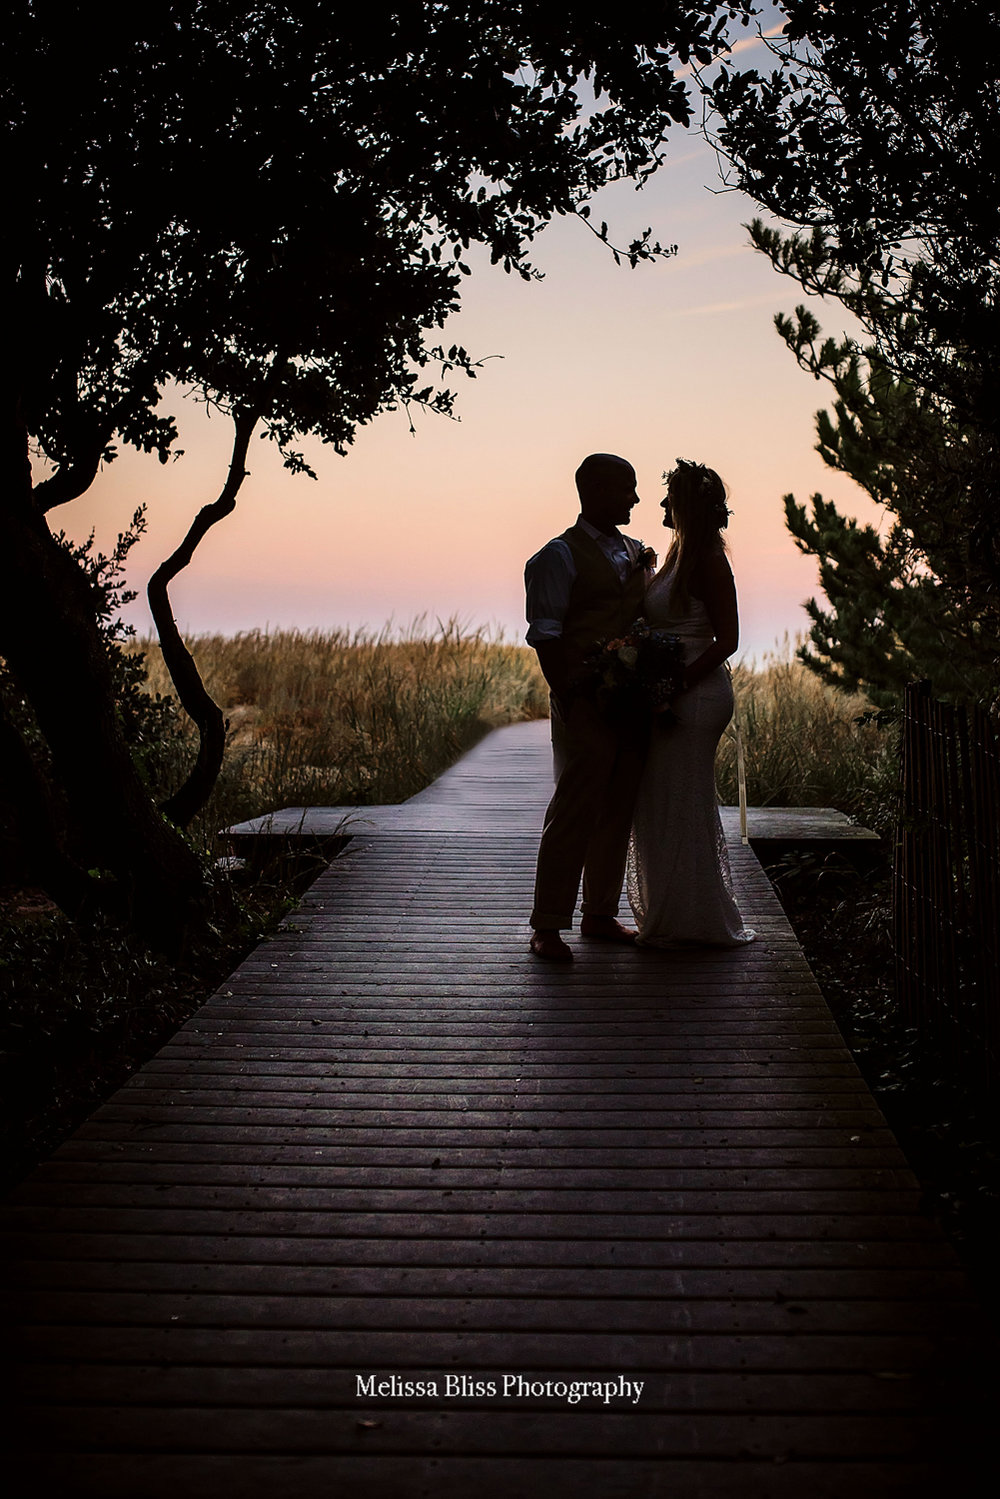 sunset-silhouette-of-bride-and-groom-on-virginia-beach-by-melissa-bliss-photography-va-wedding-photographer.jpg